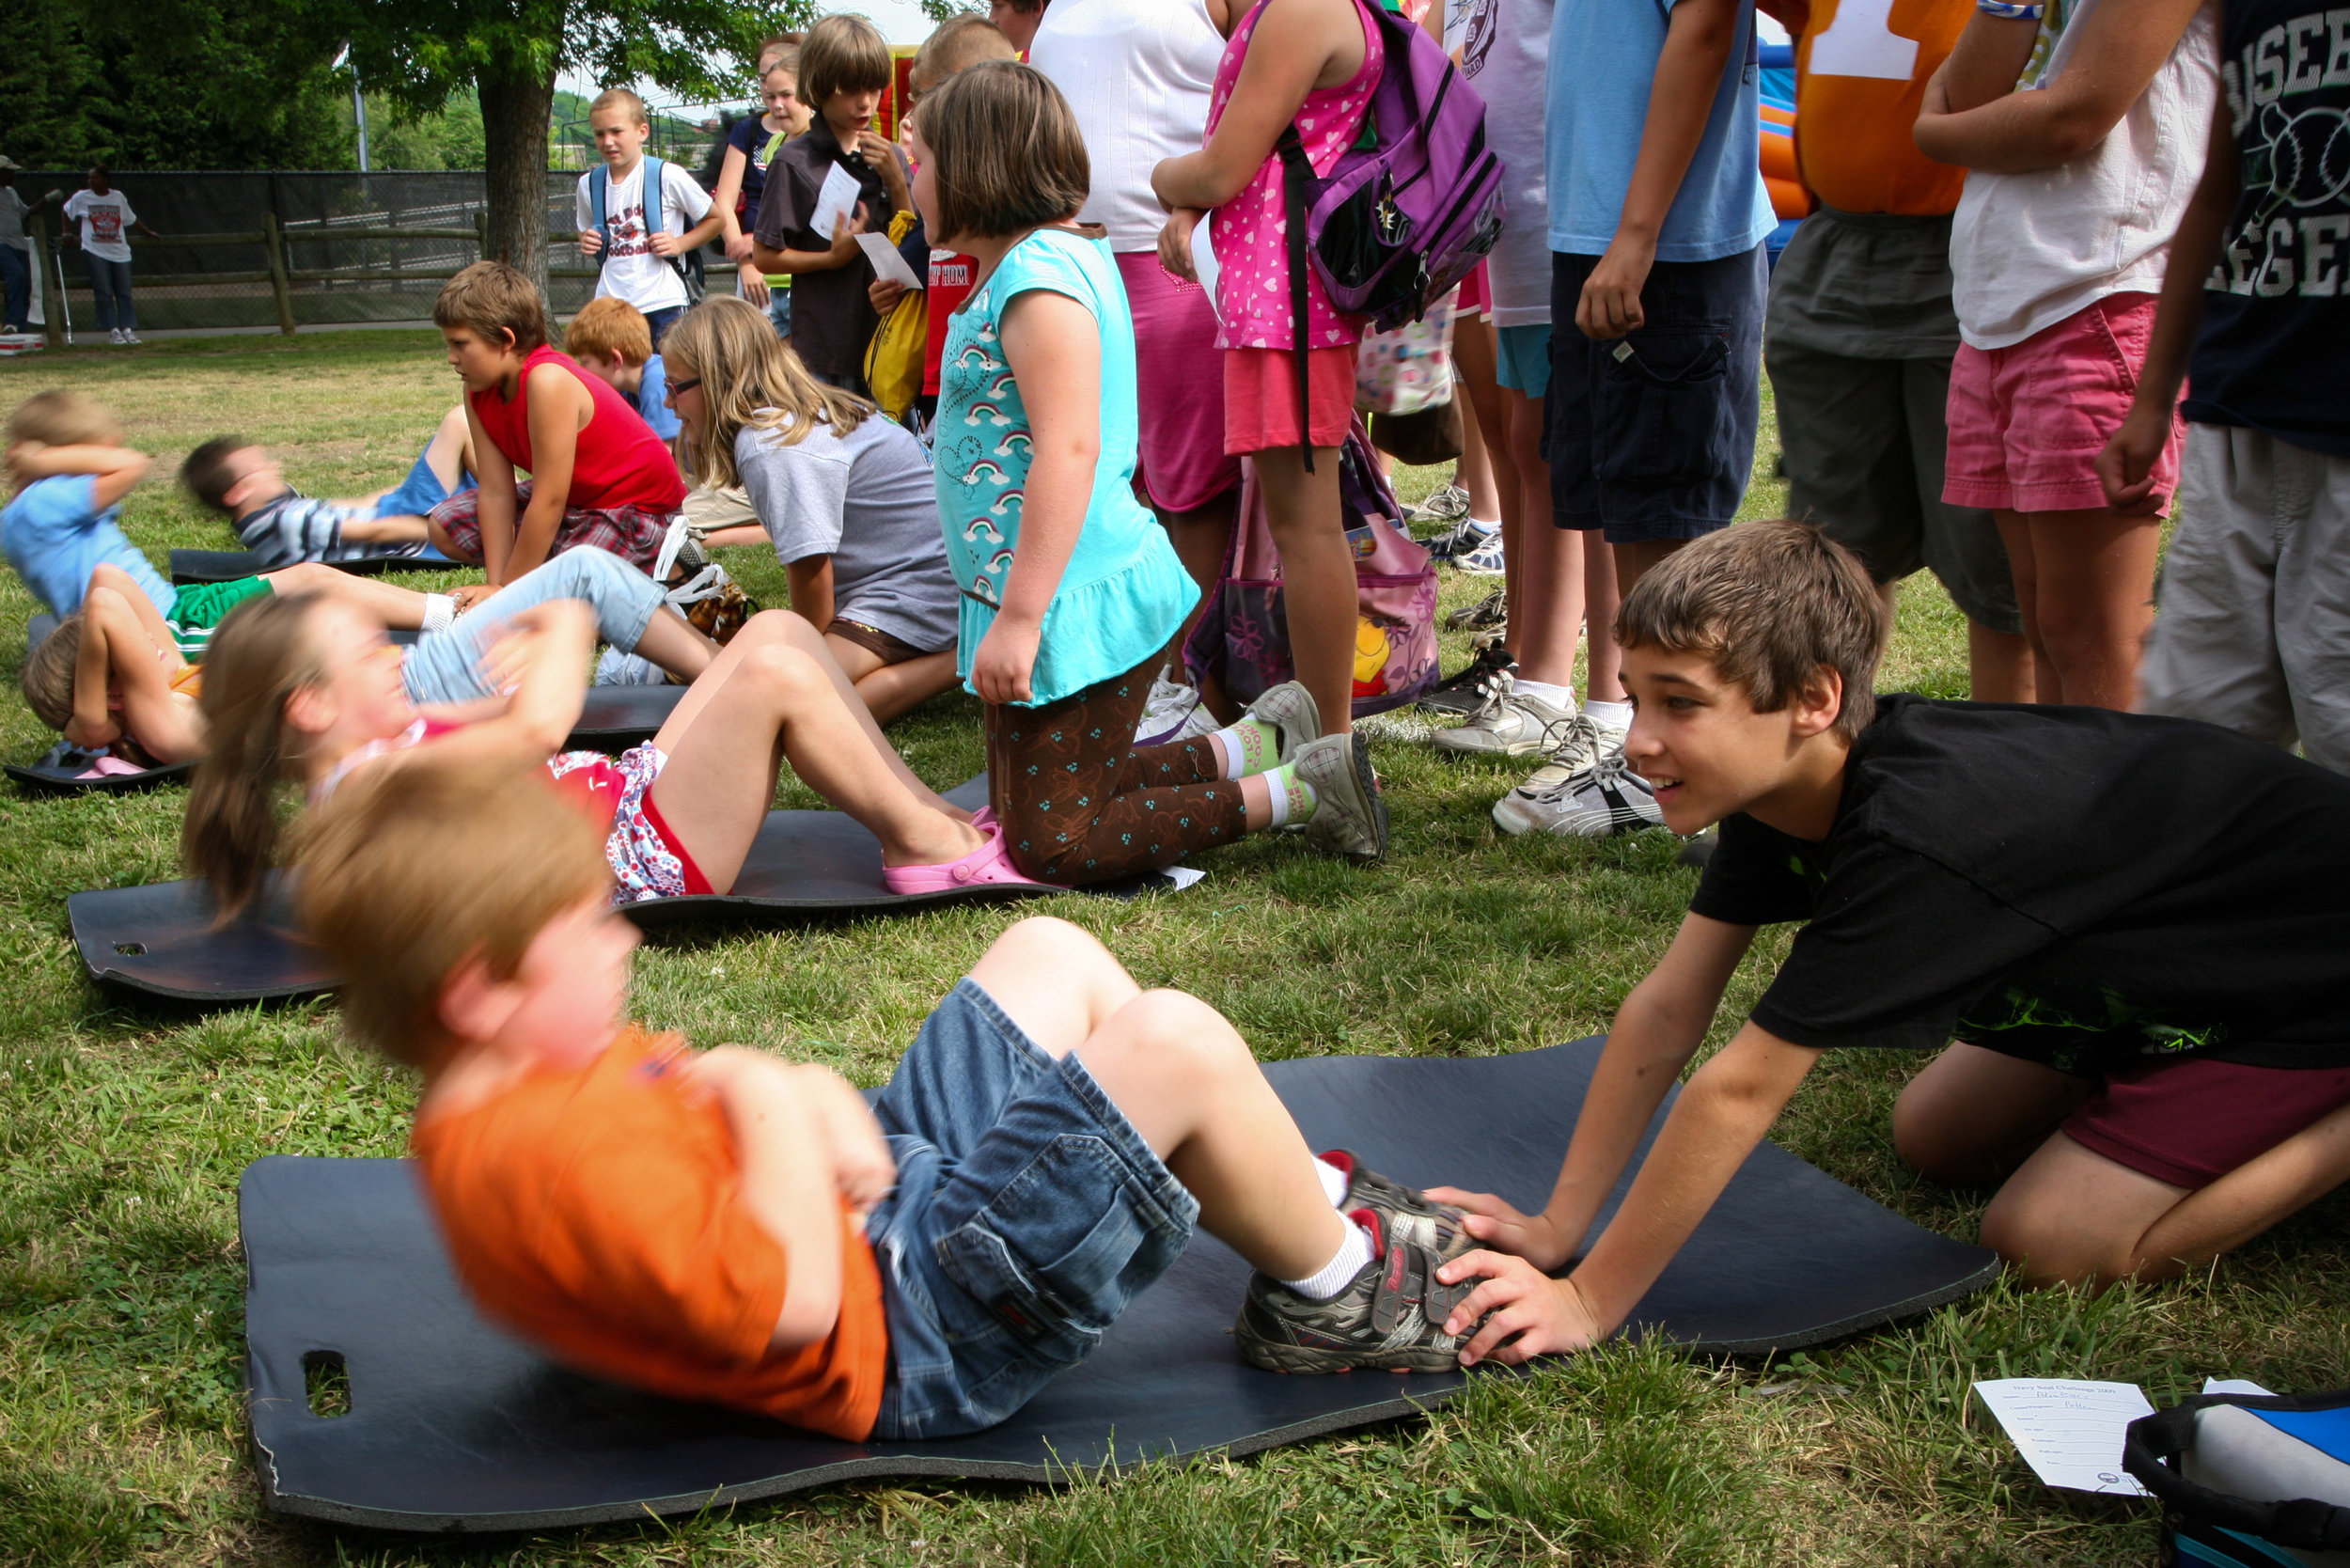 Children performing sit ups, a popular calisthenics exercise.   Image: U.S. Navy photo by Senior Chief Mass Communication Specialist Gary Ward (Wikipedia)